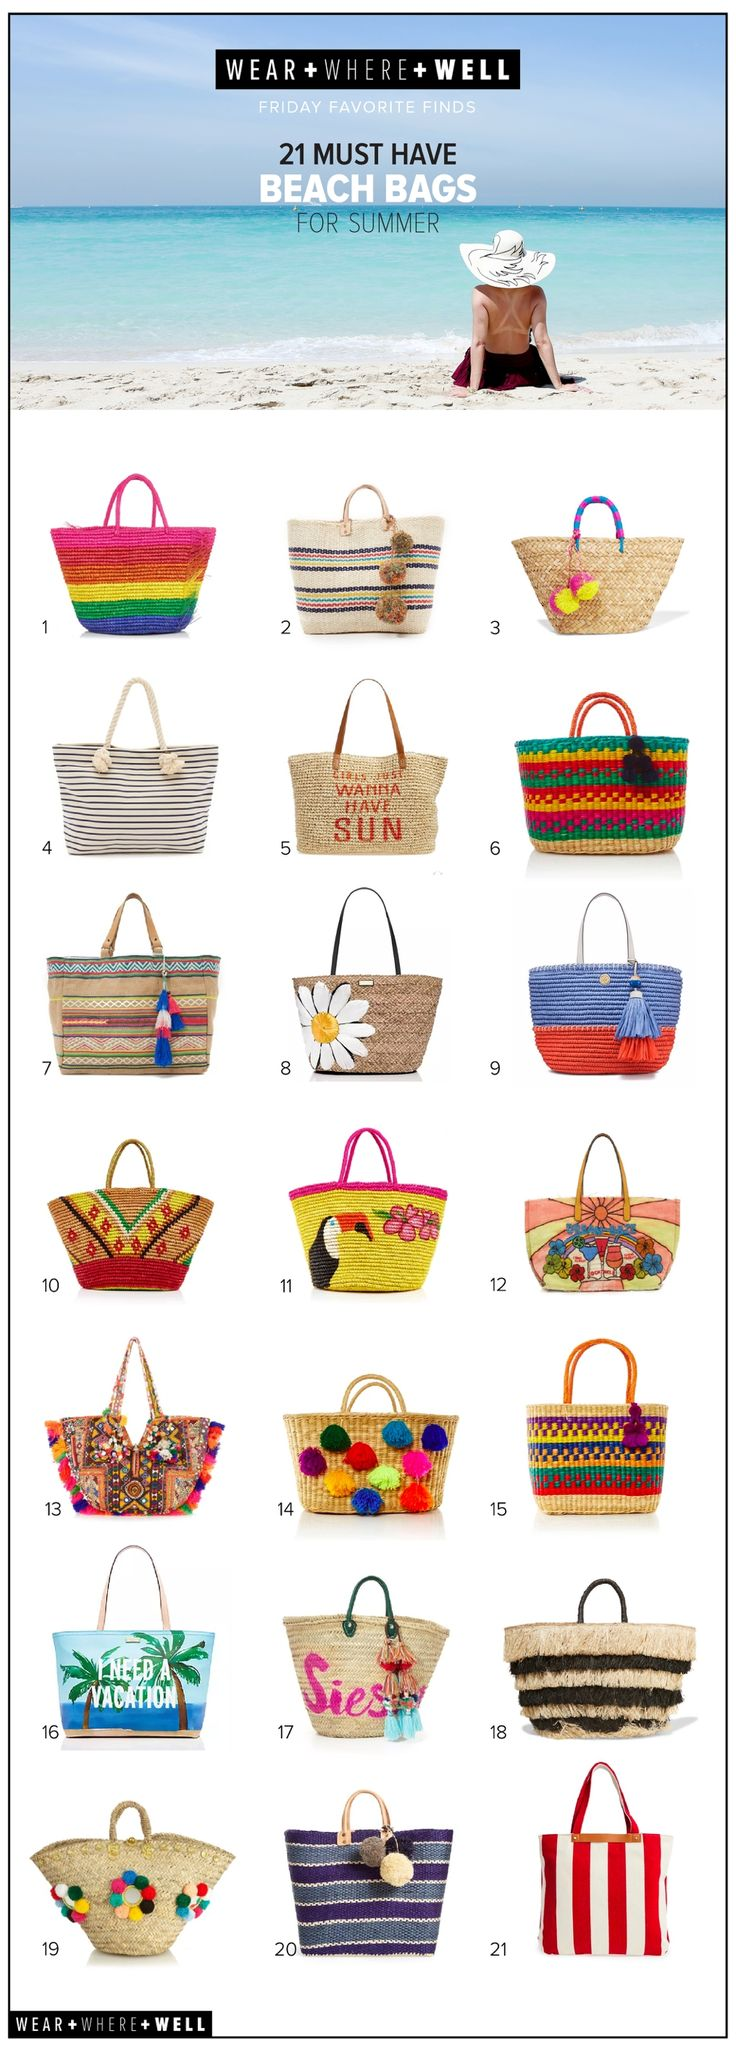 Wear + Where + Well : 21 best beach bags for summer